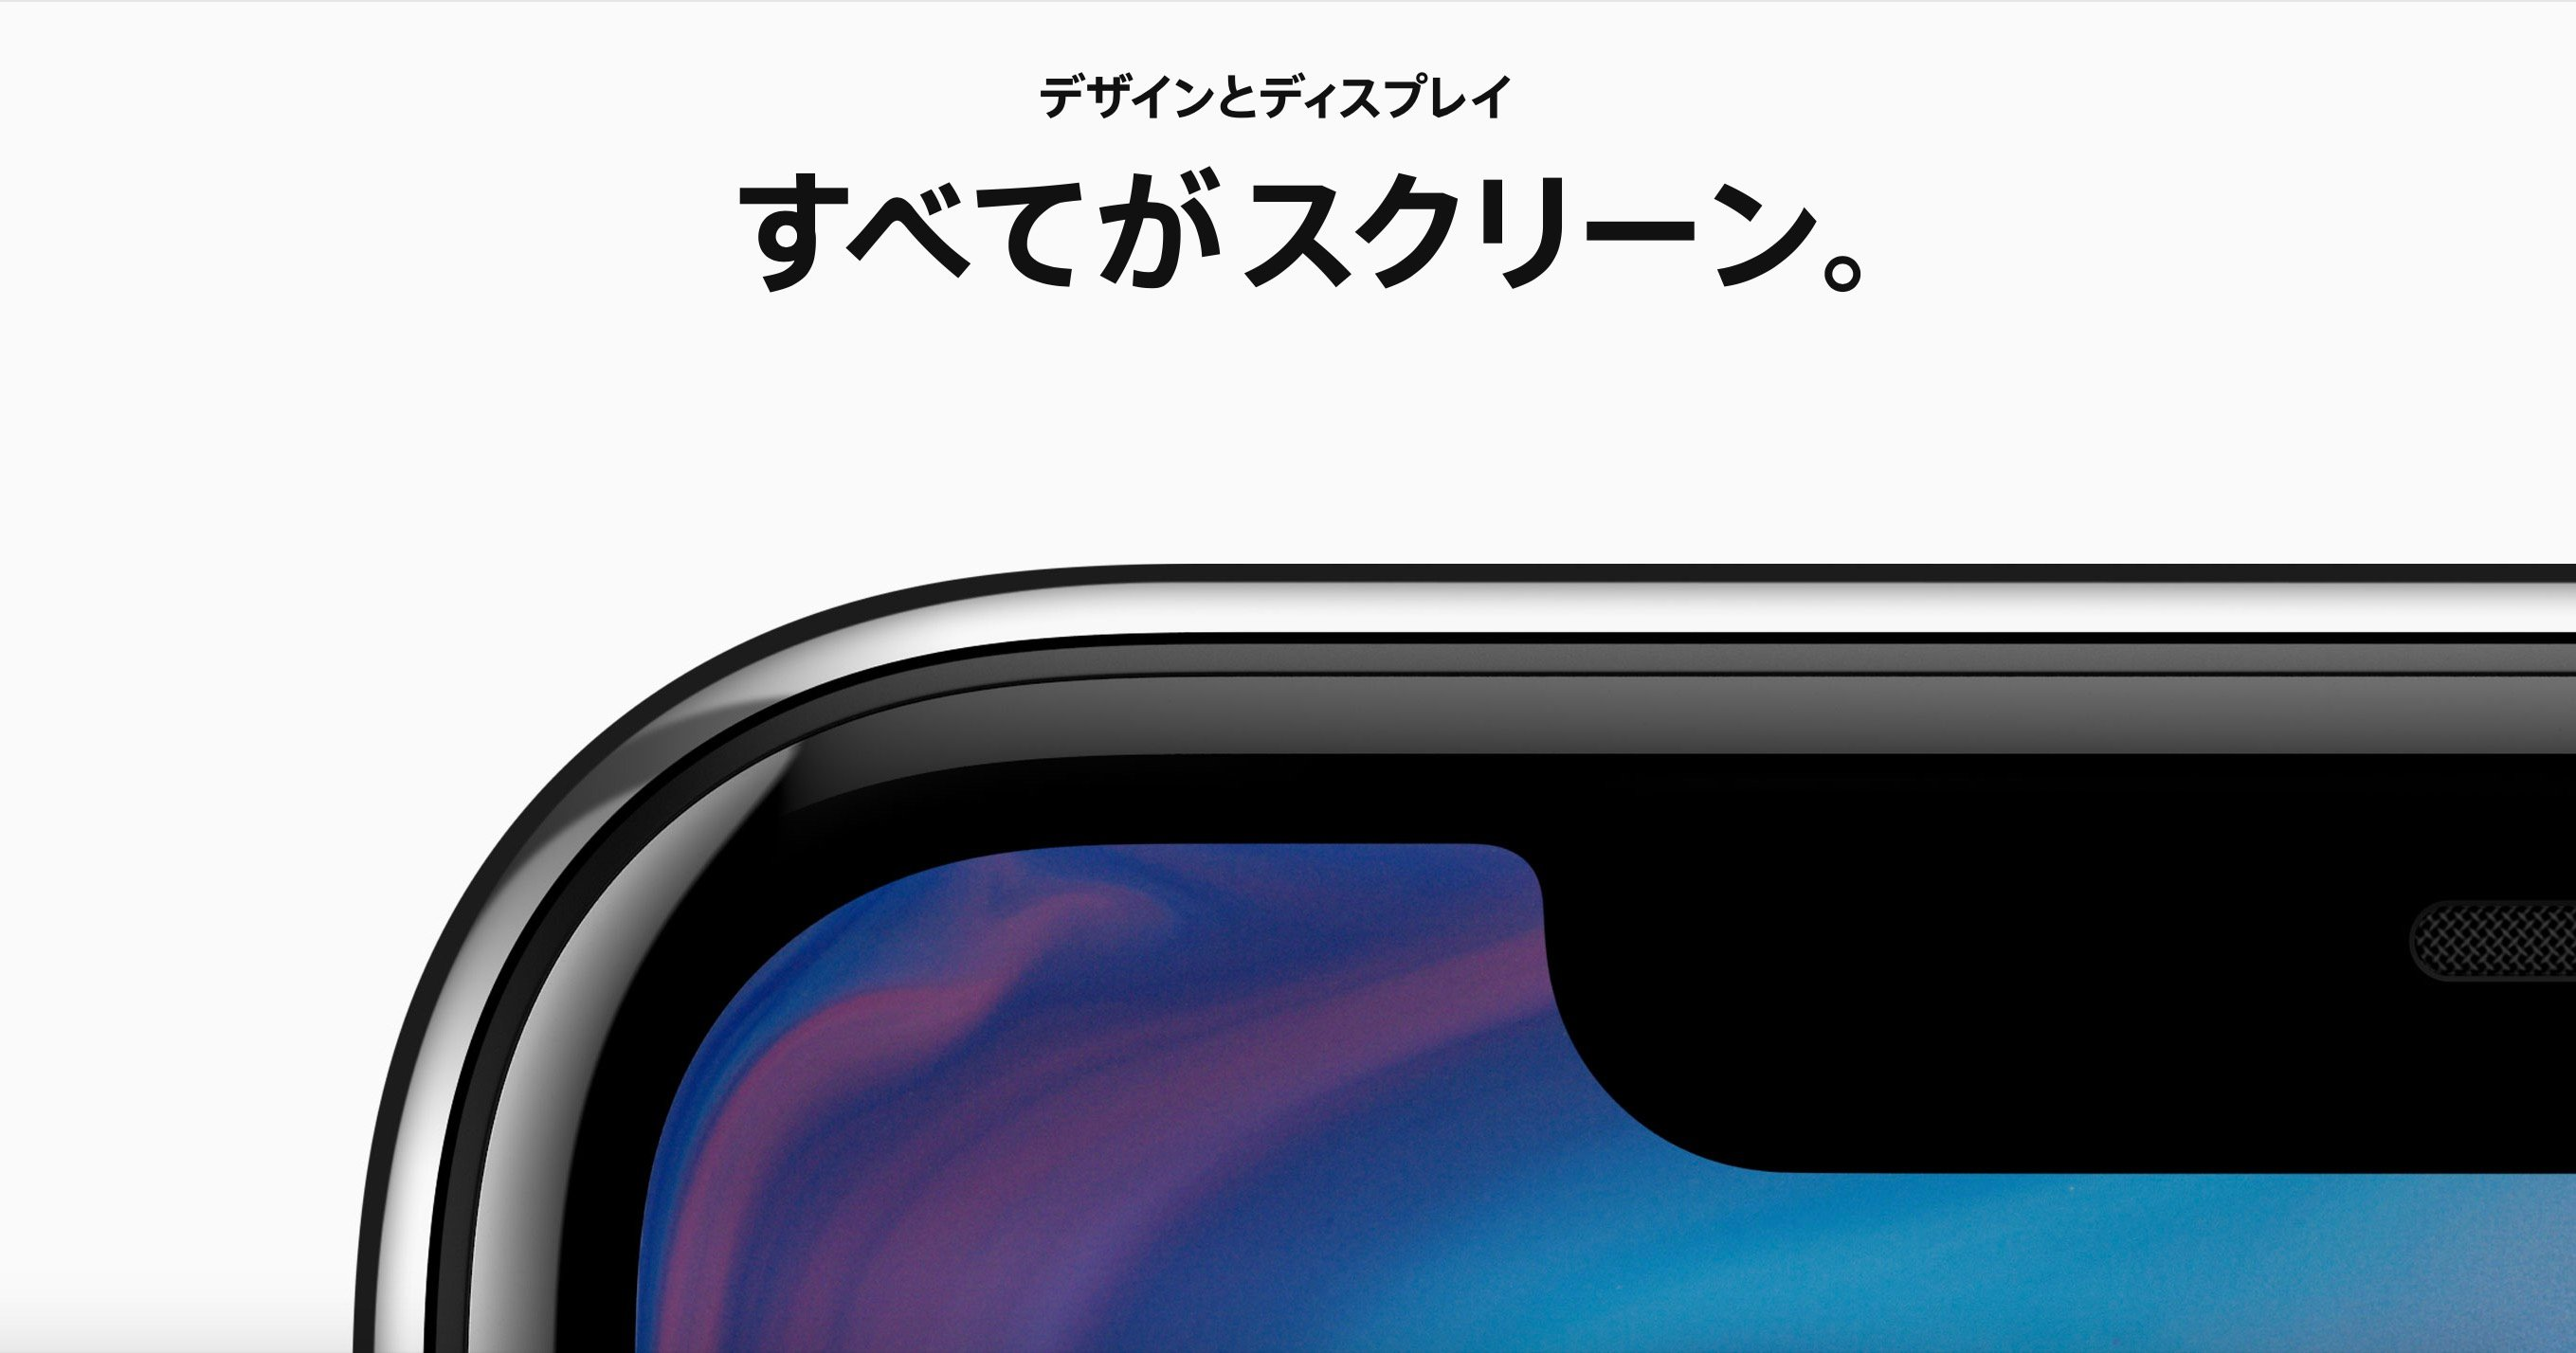 Data Shows Early iPhone X Adoption Rate Besting Plus Models